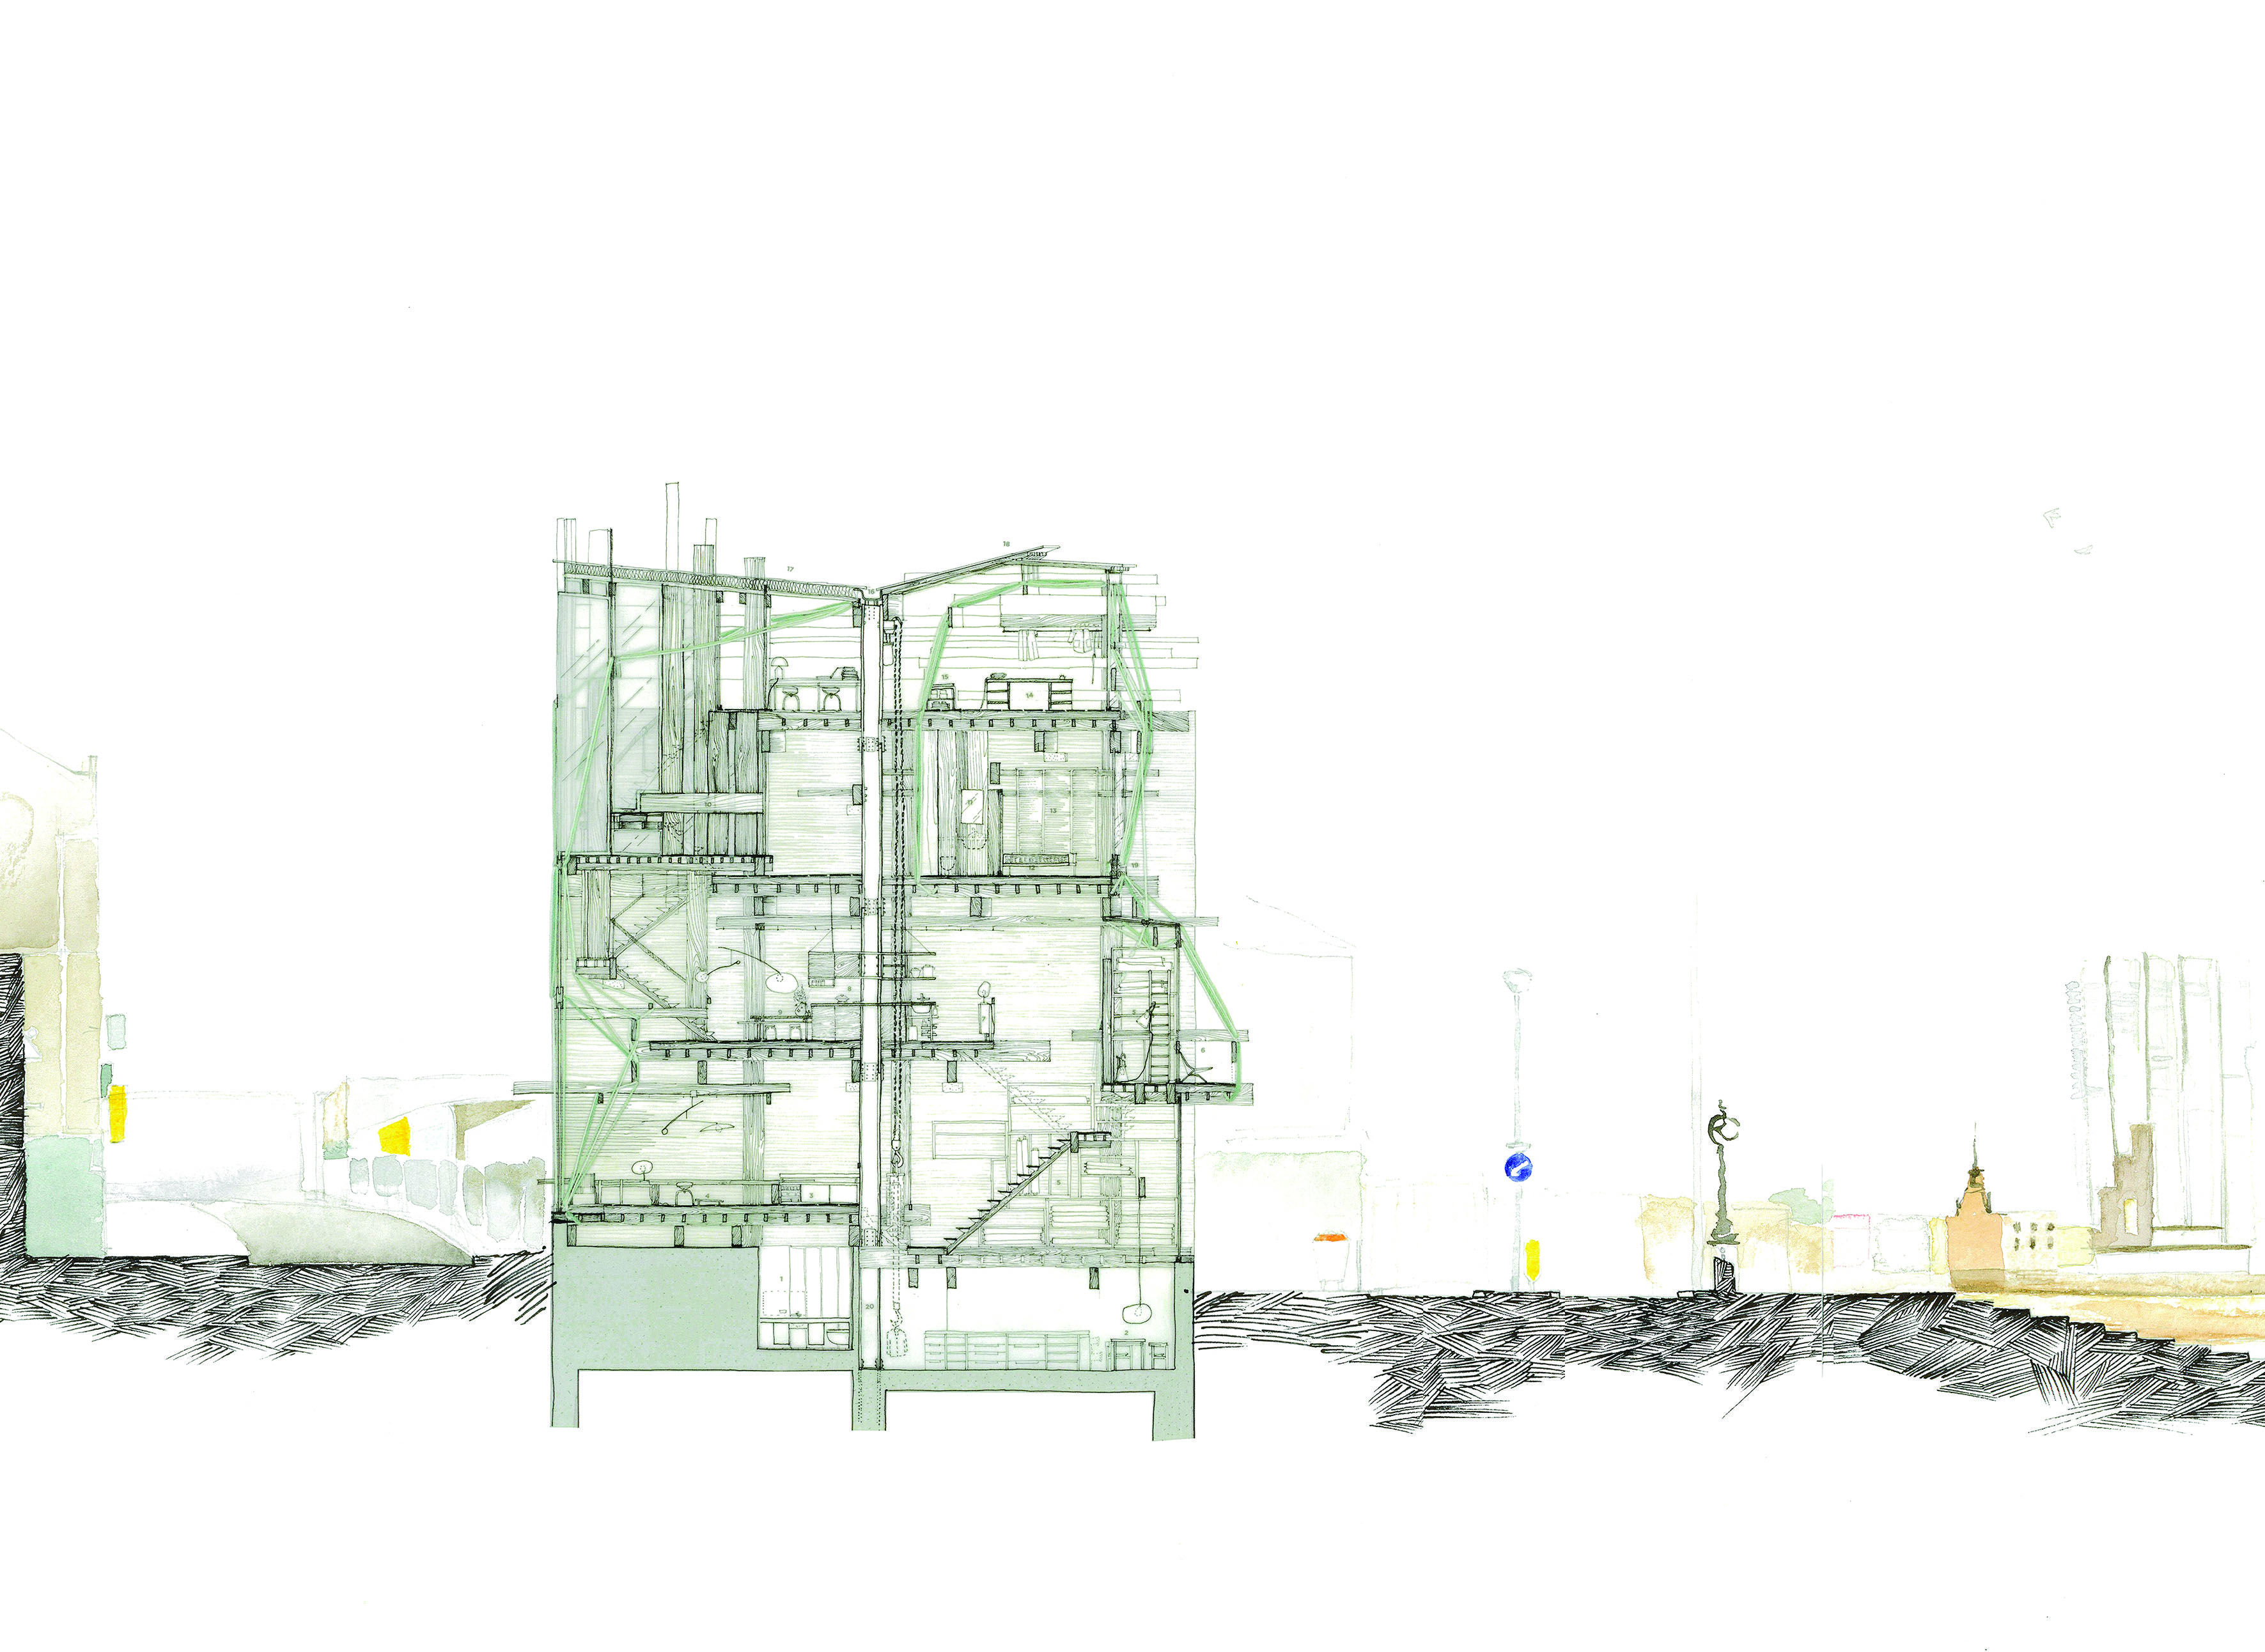 Bartlett school of architecture y1 14 yuanchu yi margate building section